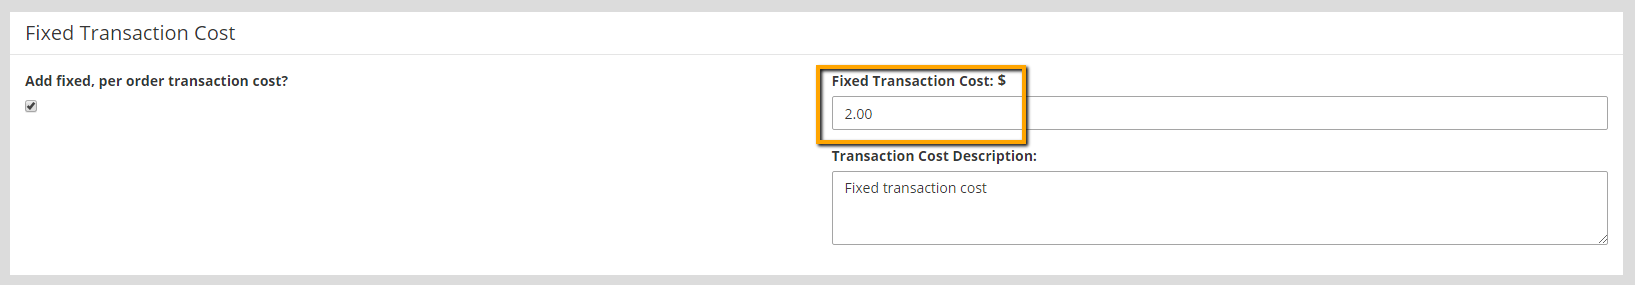 Enter Fixed Transaction Cost